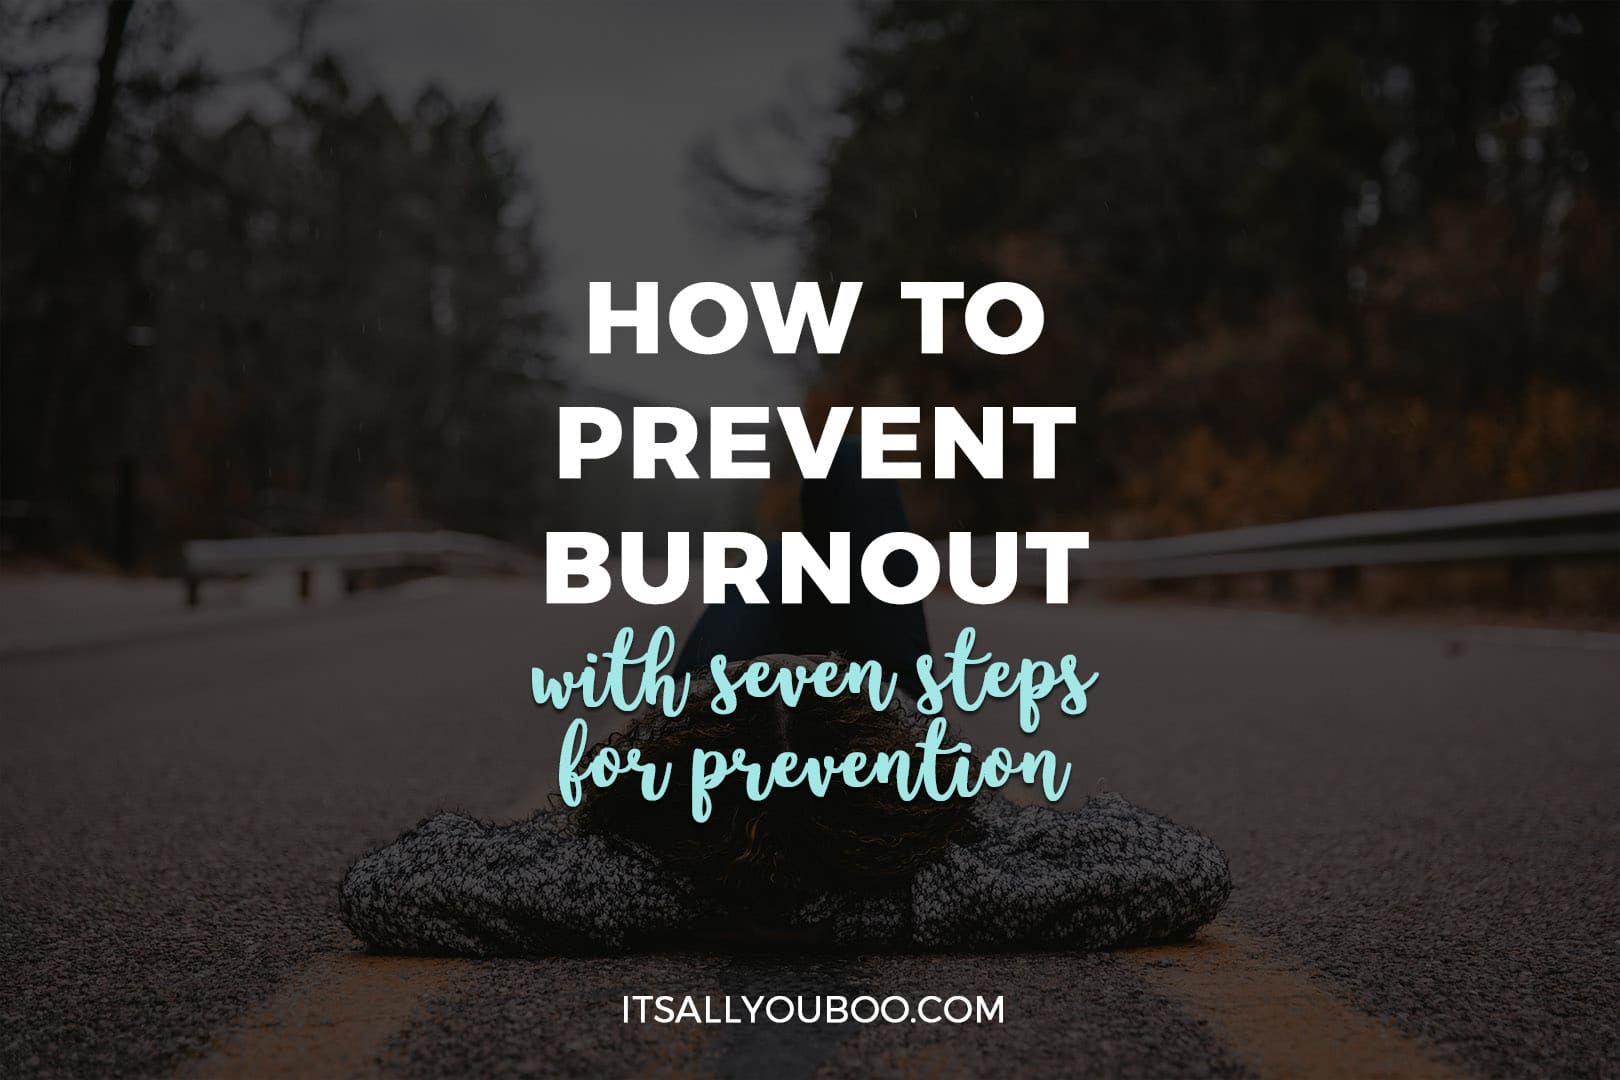 How to Prevent Burnout with 7 Steps for Prevention